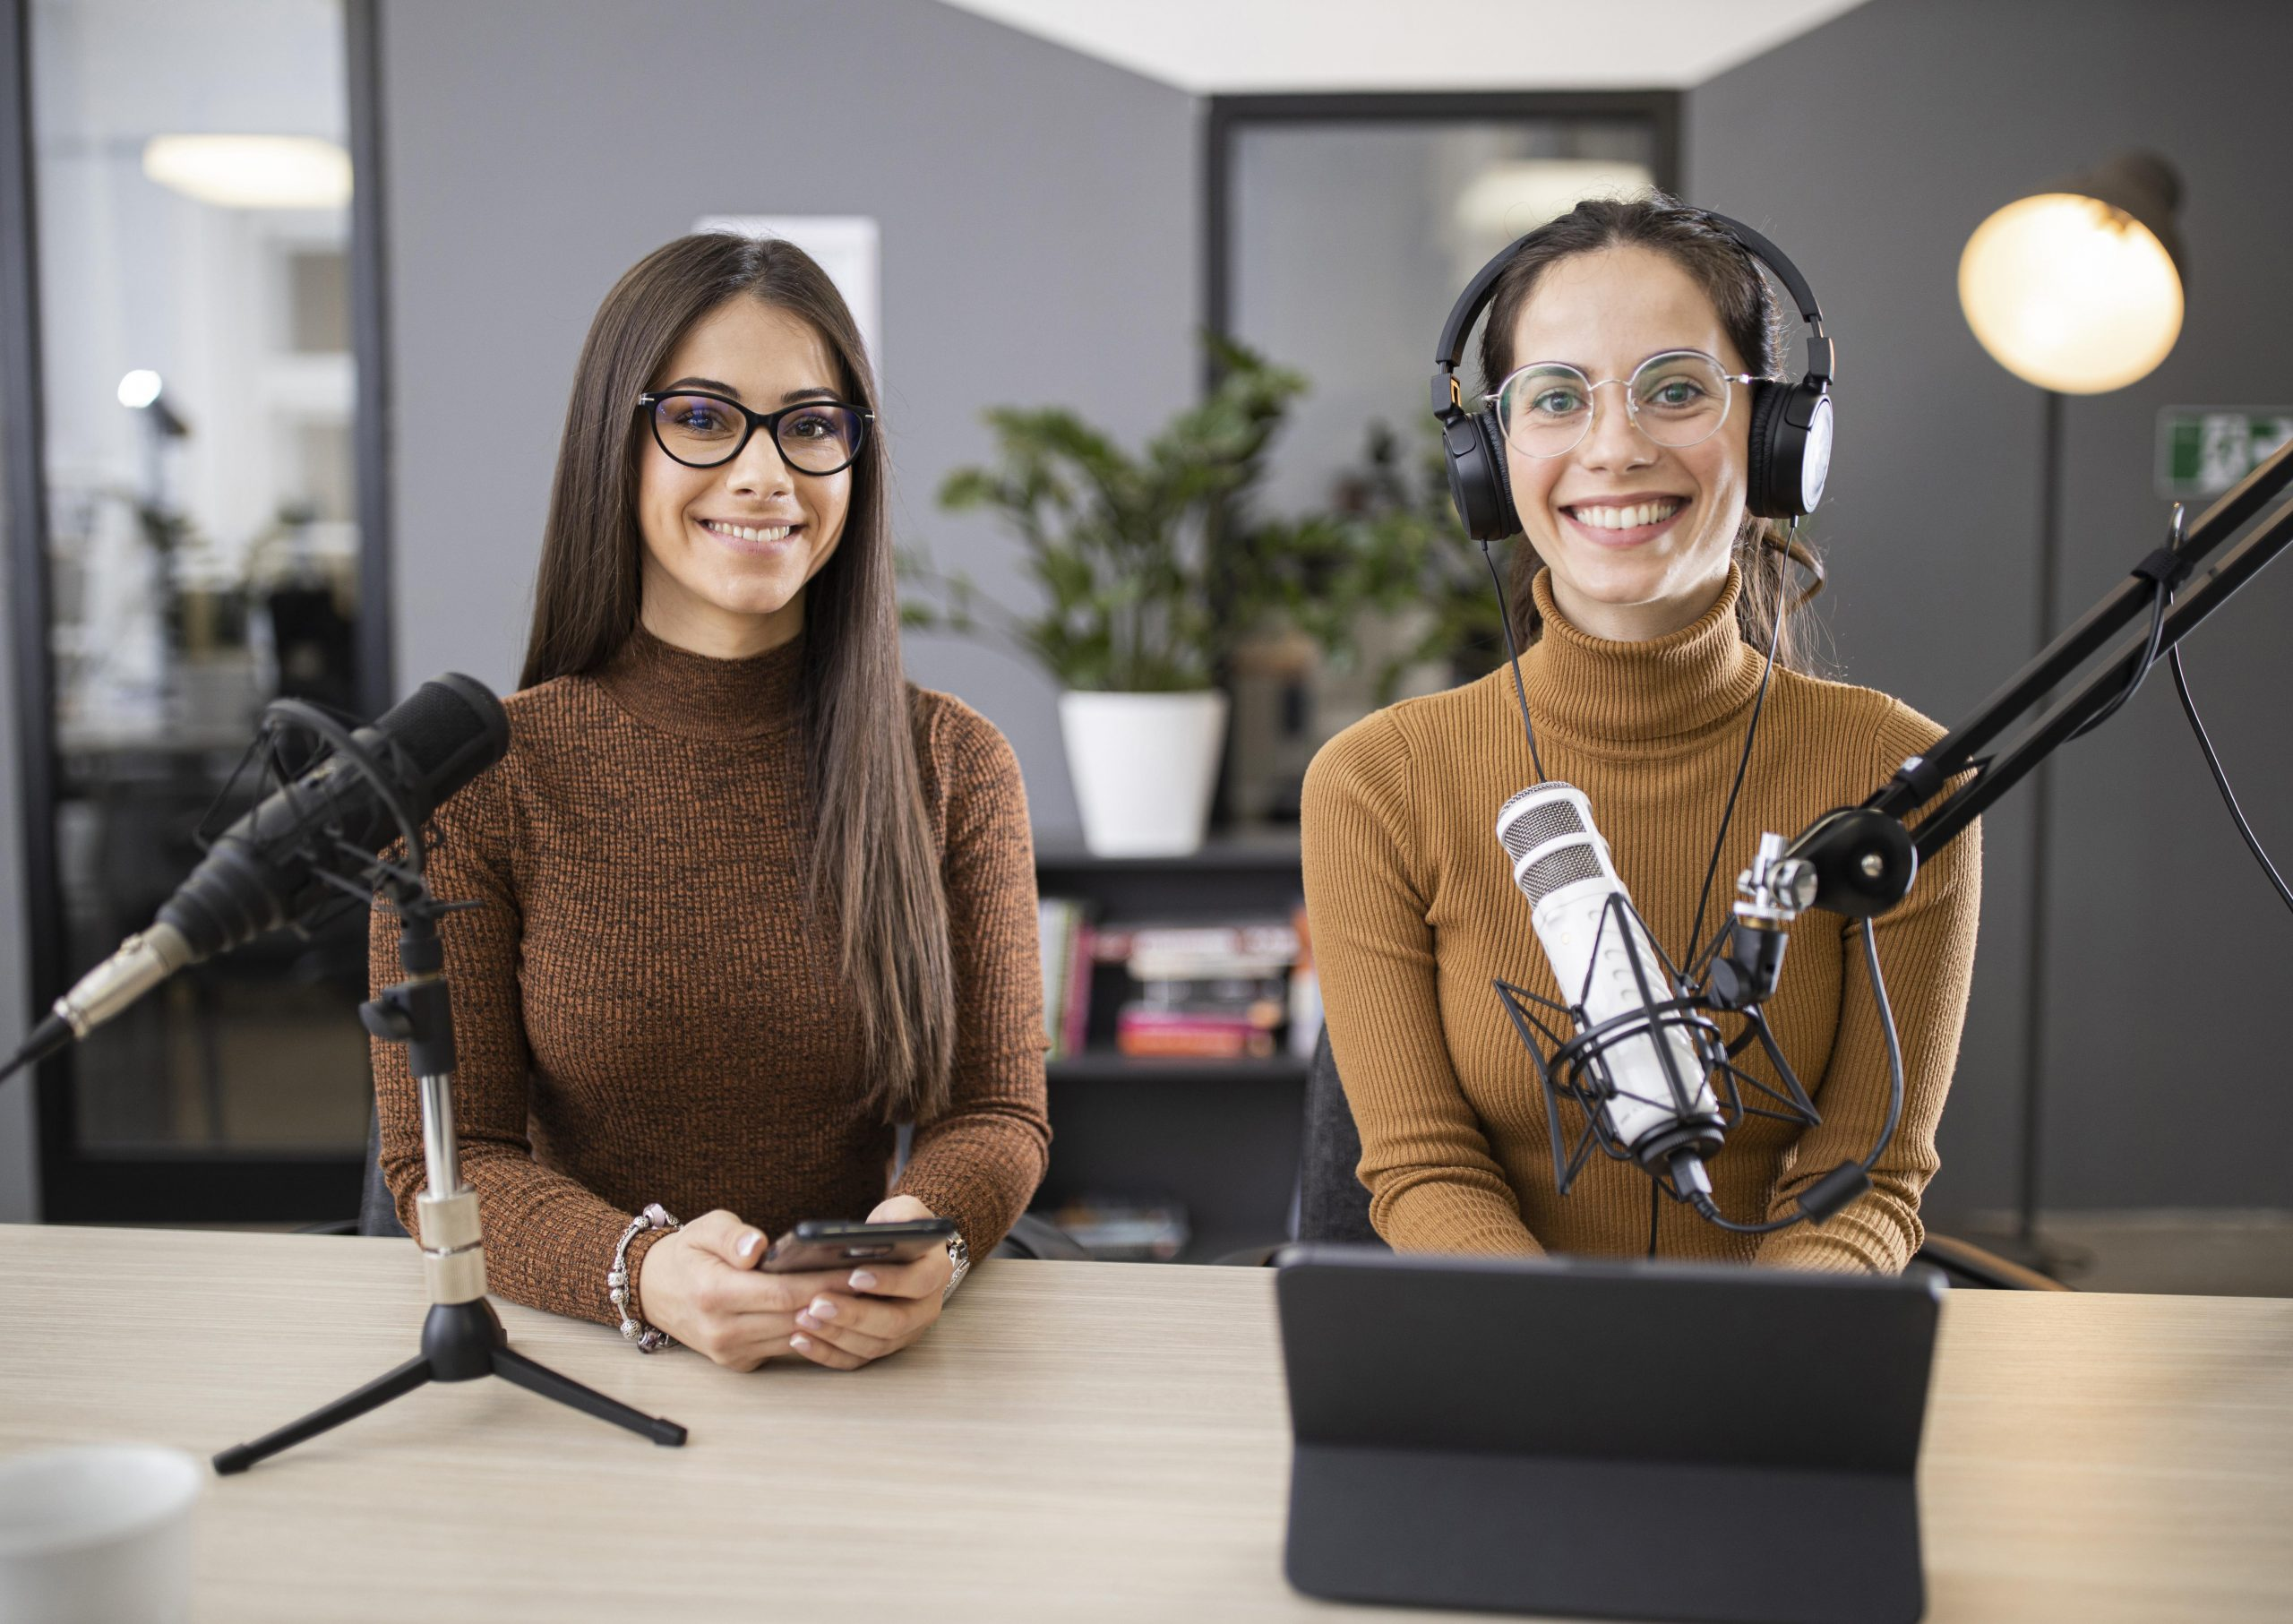 Women entrepreneurs hosting a successful small business podcast.